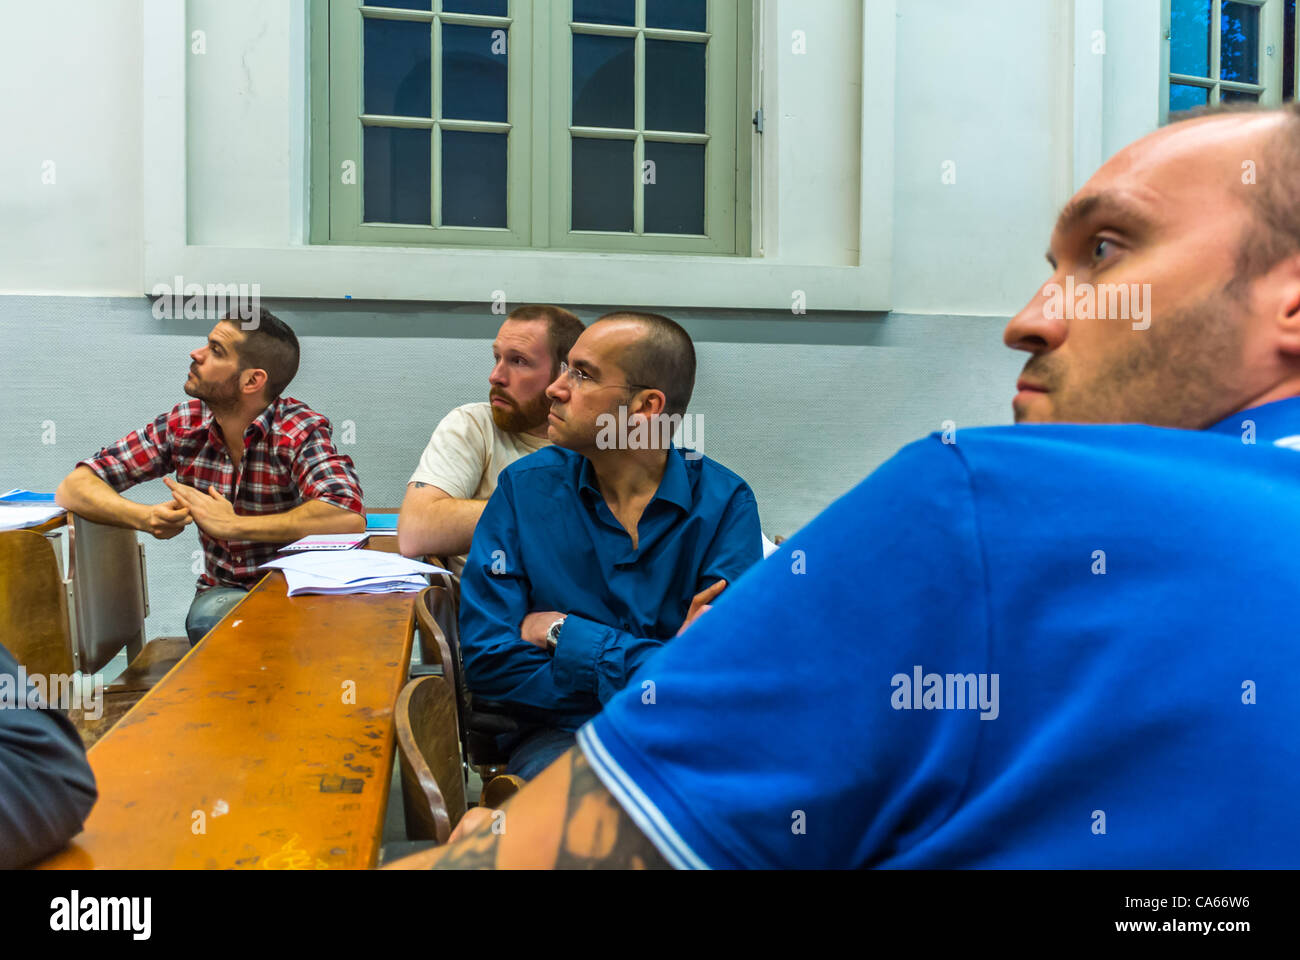 Act Up-Paris, Public Meeting on PrEP IPERGAY Pre-Exposure Prophylaxis AIDS Prevention, Paris, France - Stock Image